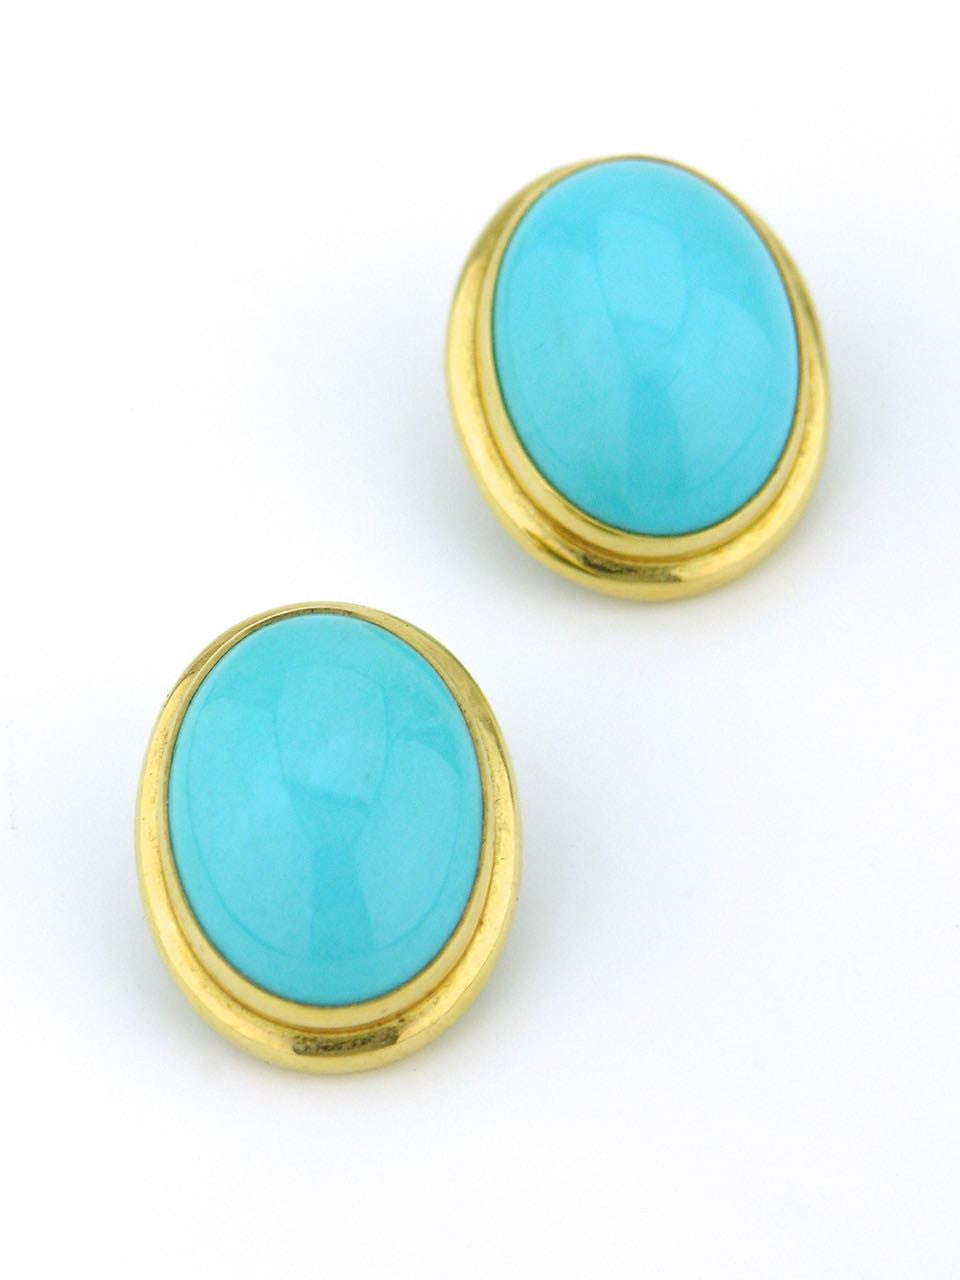 Tony White oval turquoise and gold clip earrings